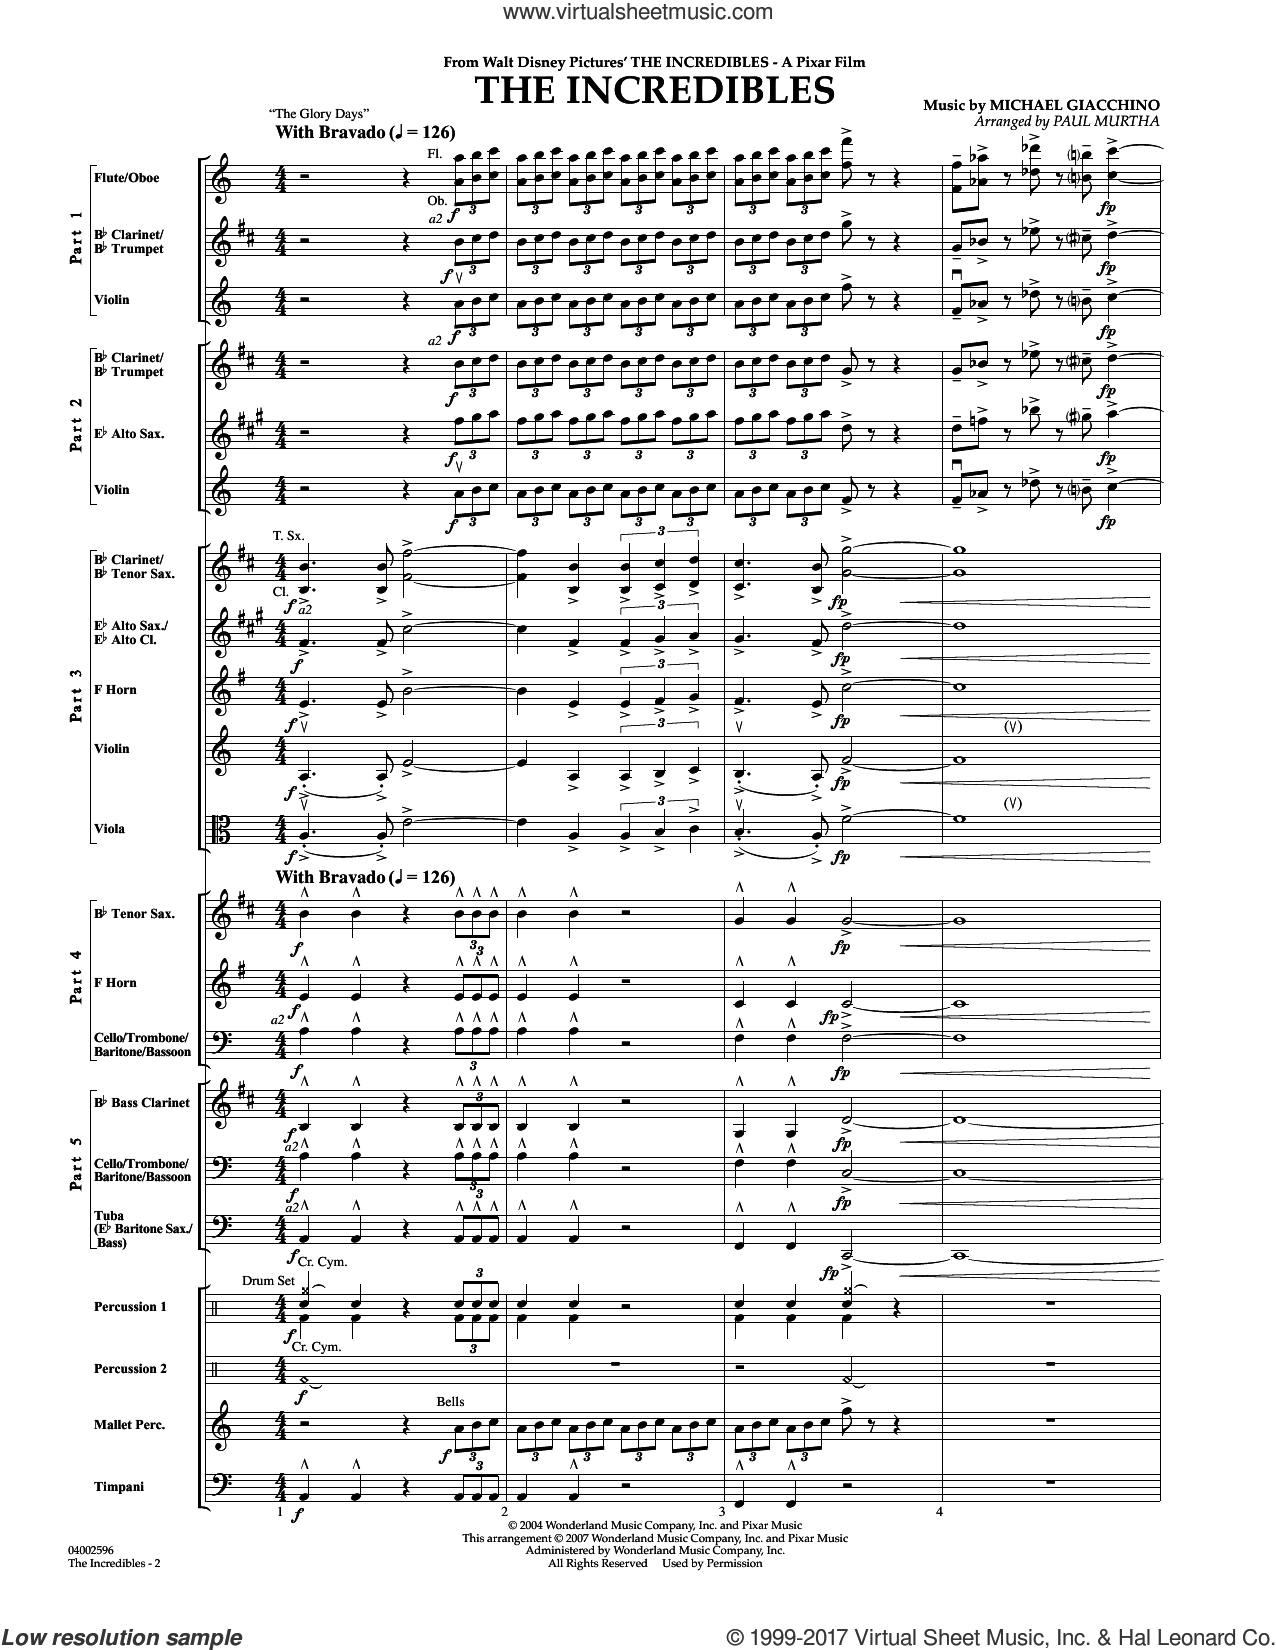 The Incredibles (COMPLETE) sheet music for concert band by Paul Murtha and Michael Giacchino, intermediate skill level